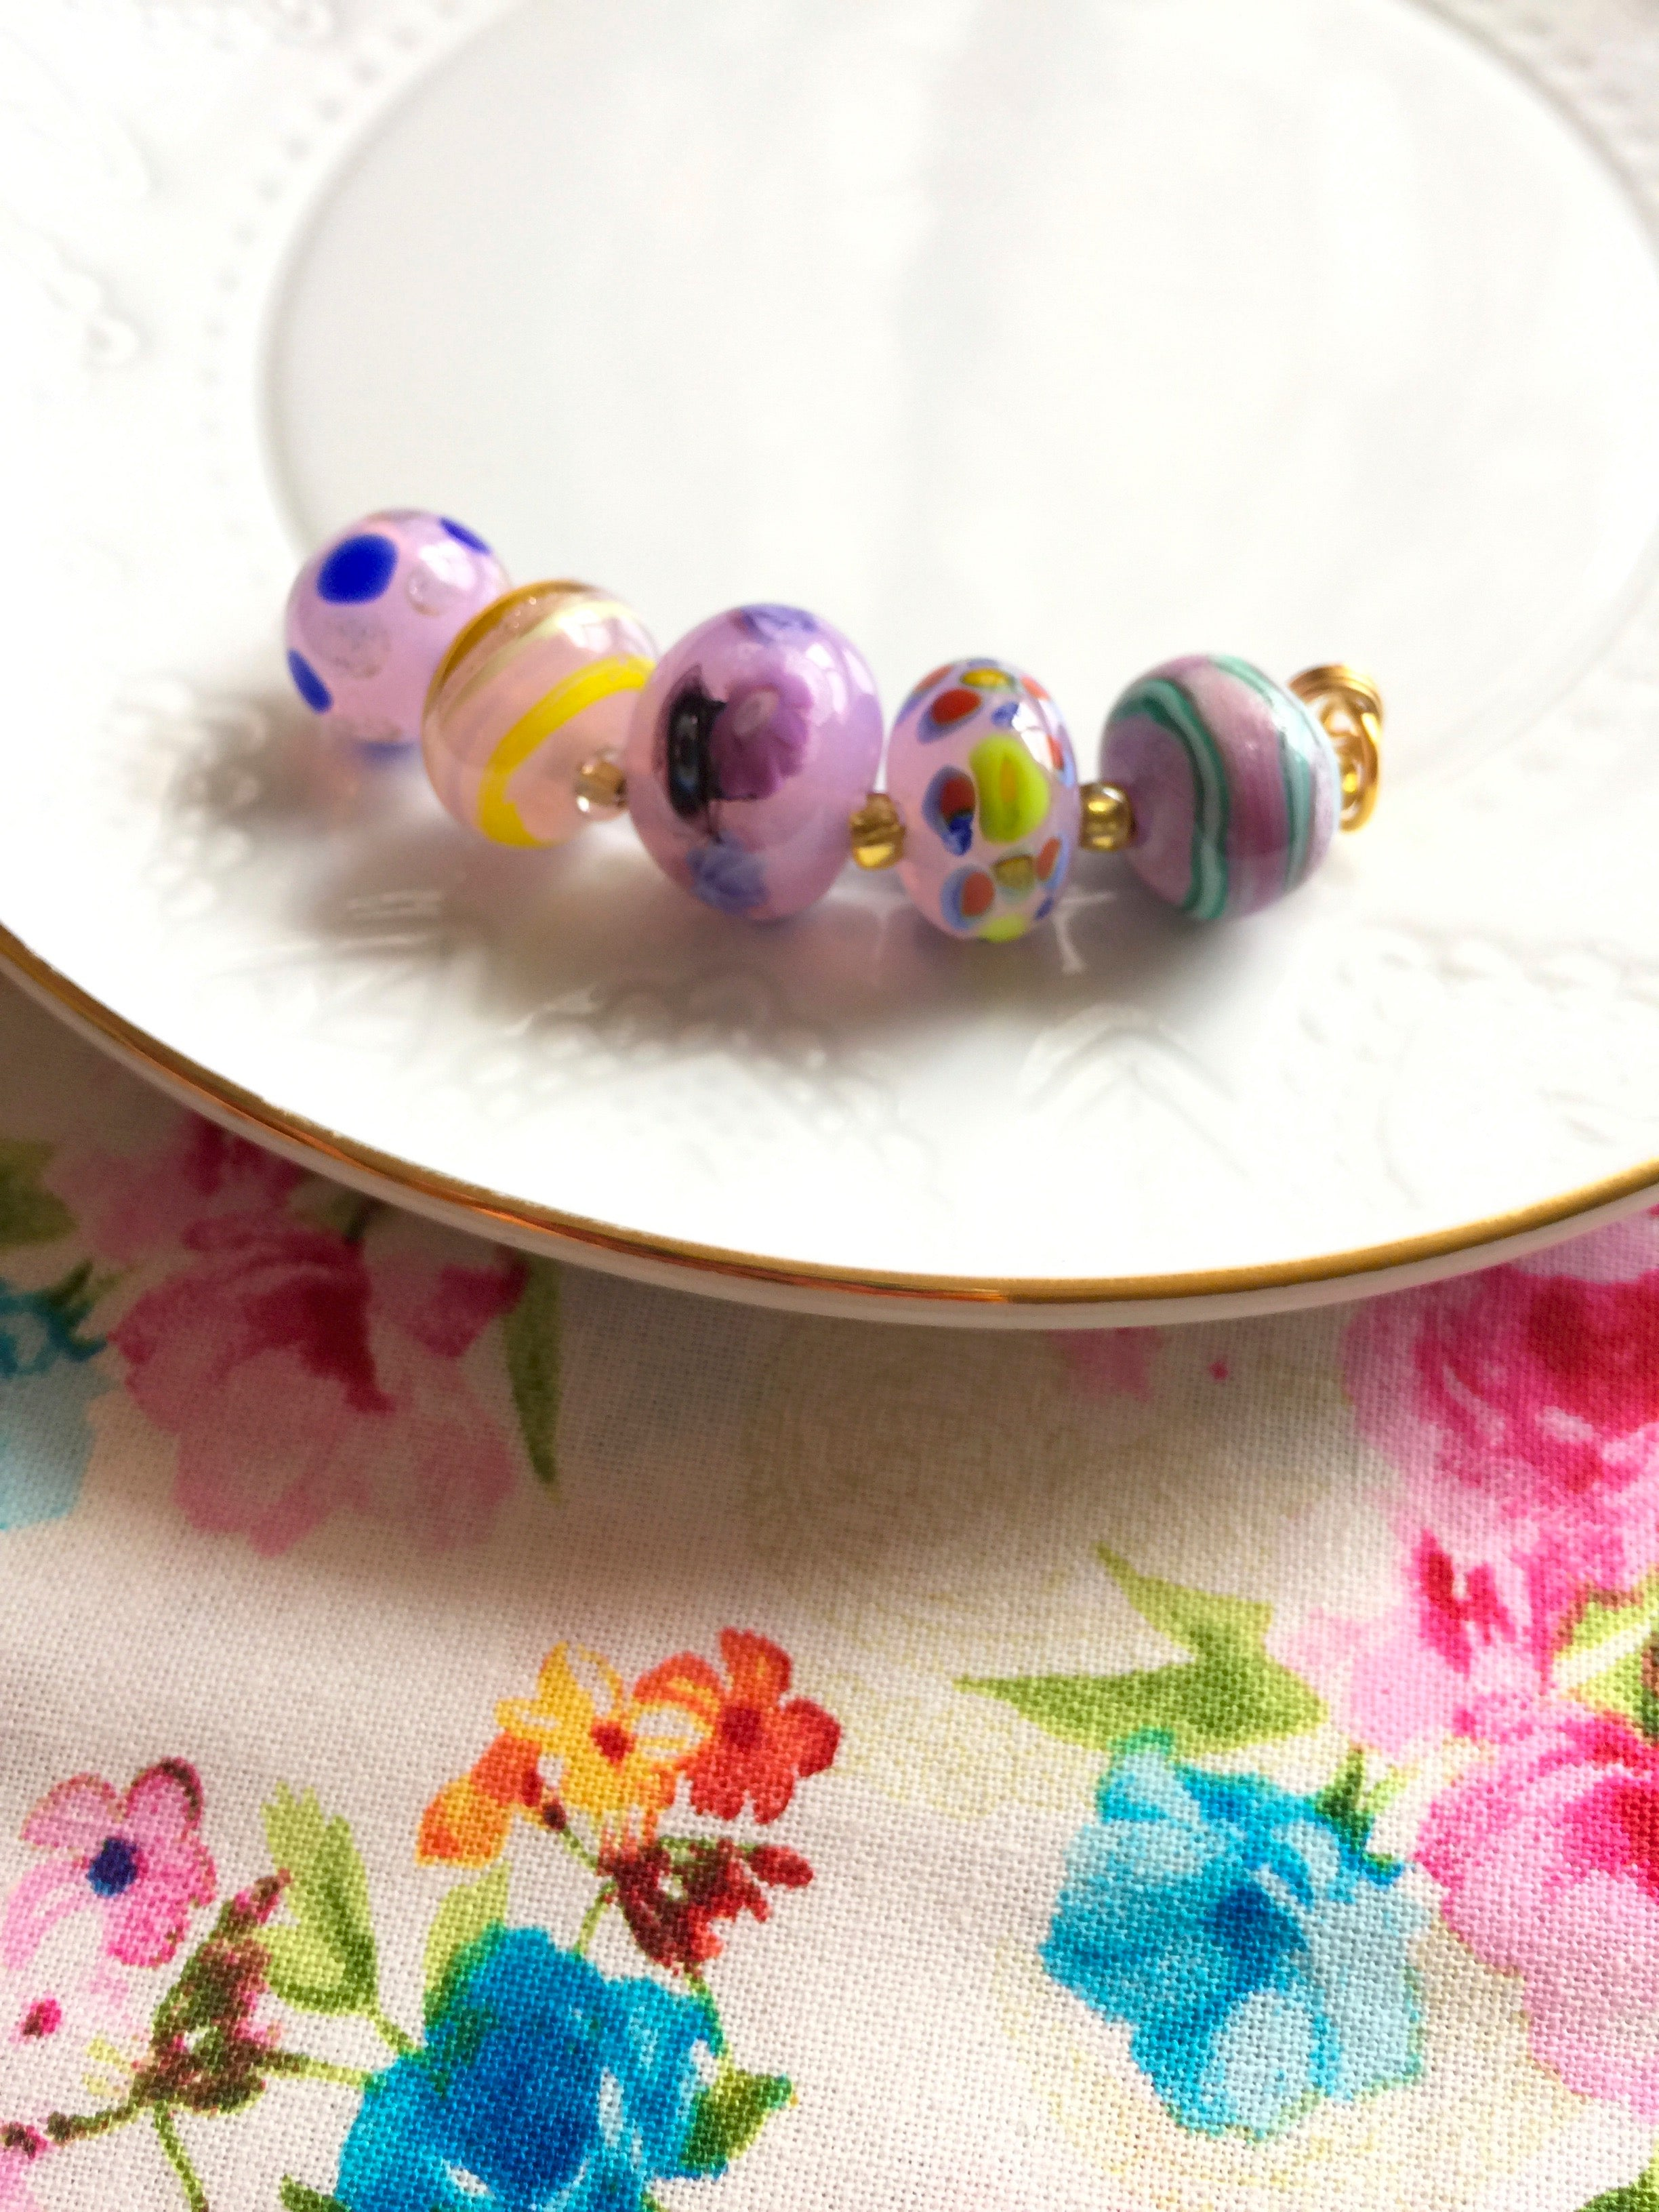 Set of 5 Handcrafted Lampwork Glass Beads in shades of Pink, Blues, Violet with spots and stripes Active